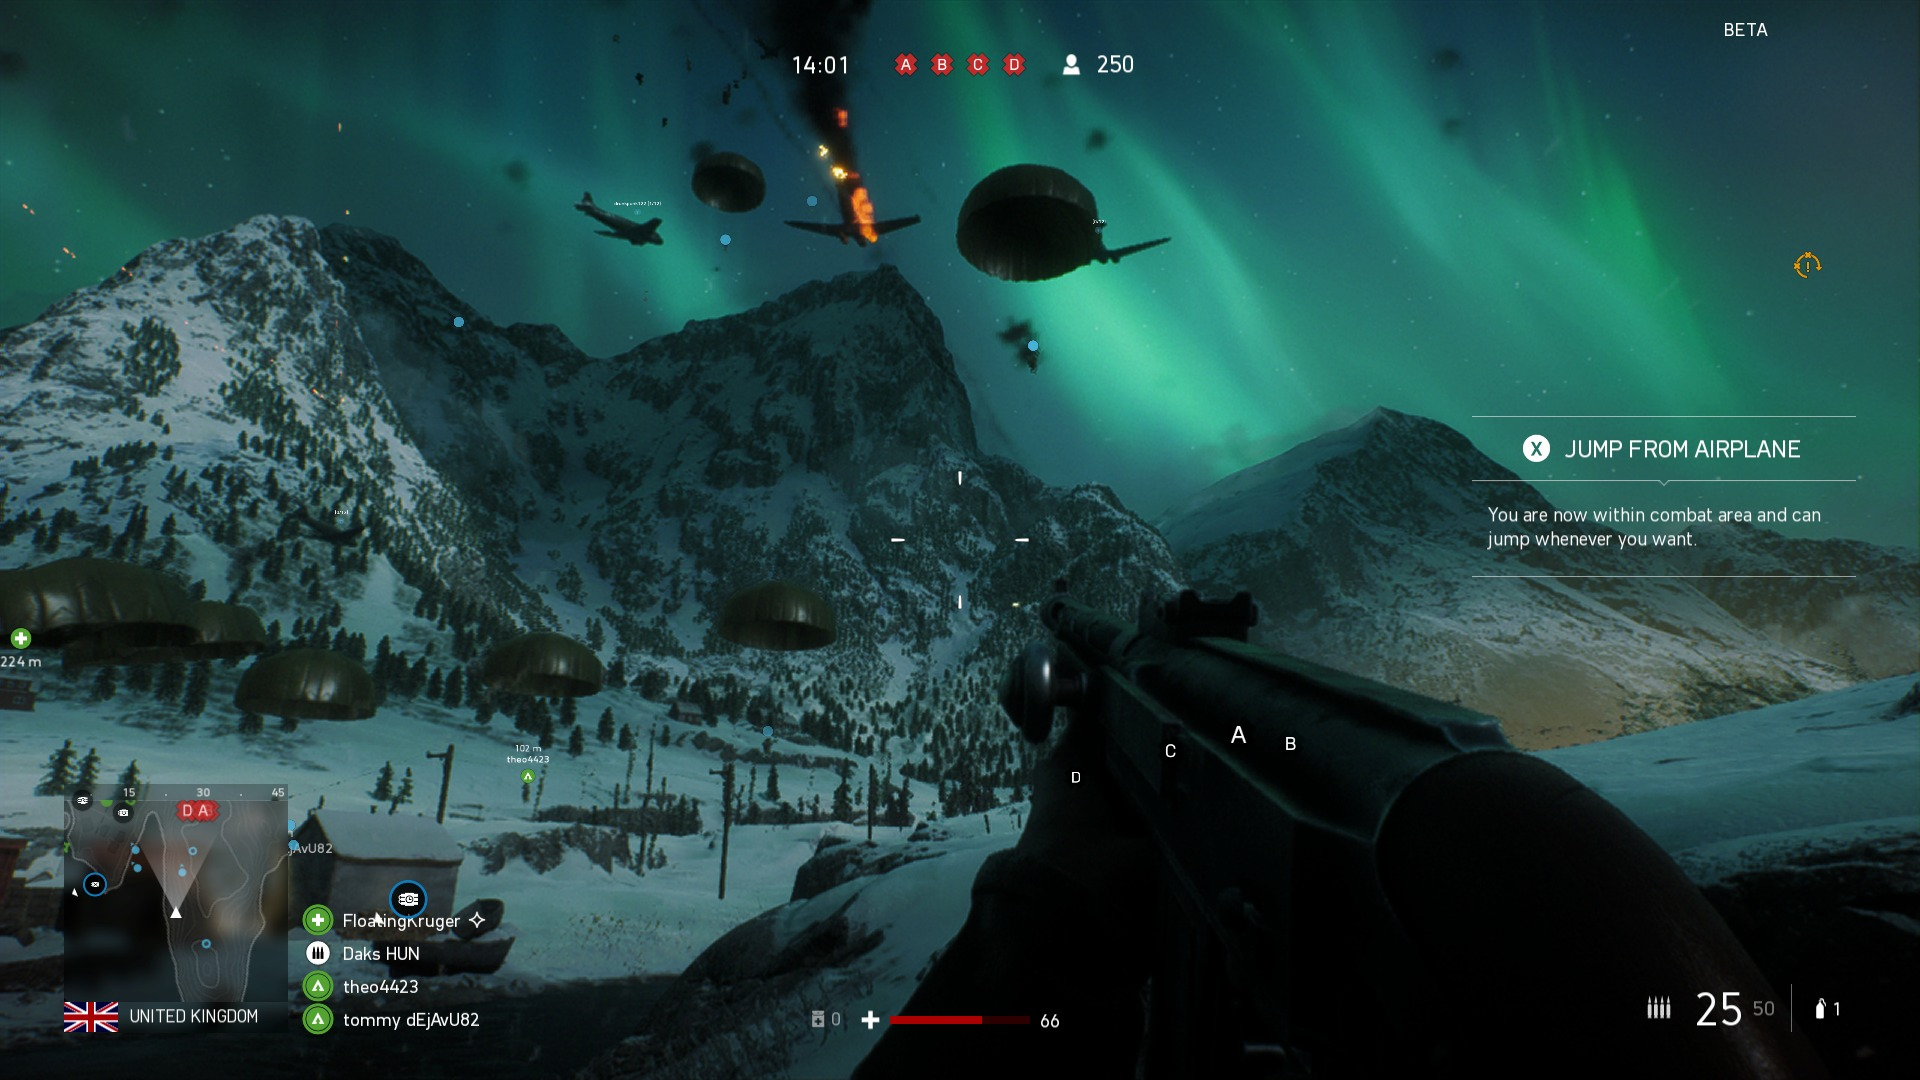 Battlefield V focuses more on team play, providing slower and more